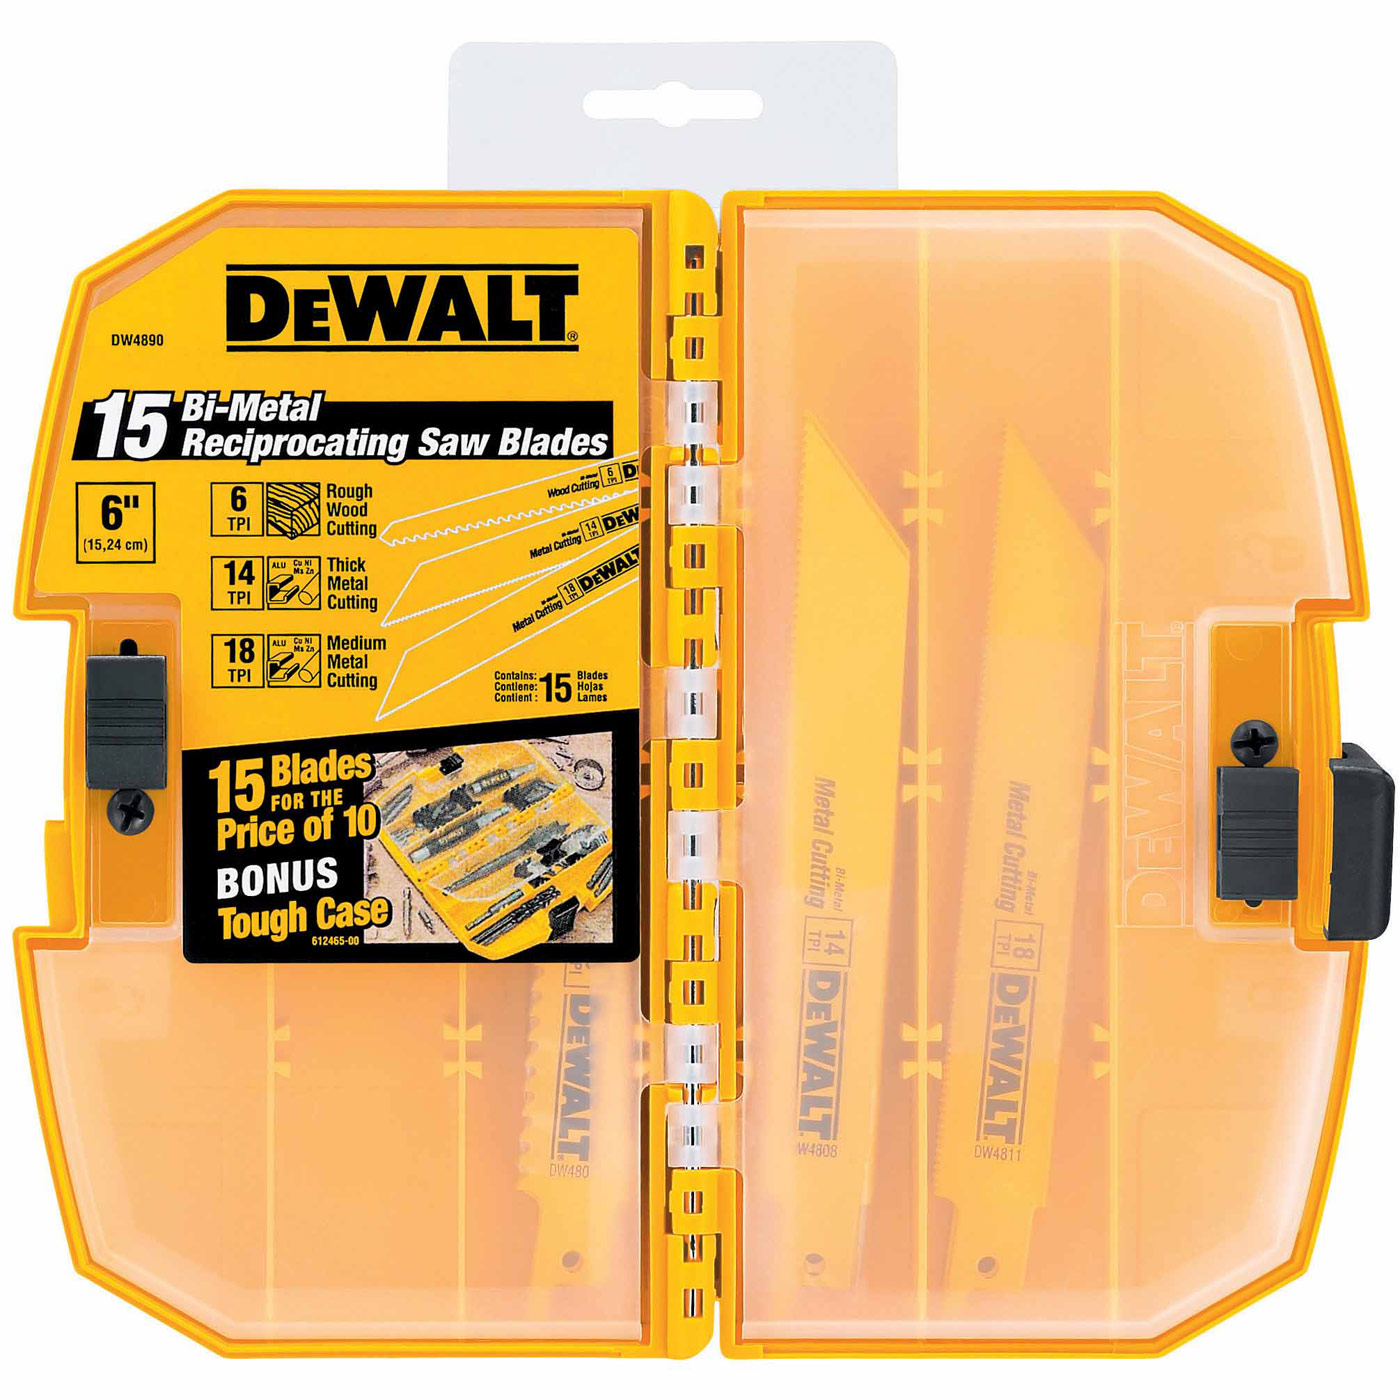 Dewalt dw4890 15 piece bi metal reciprocating saw blade set with case greentooth Image collections